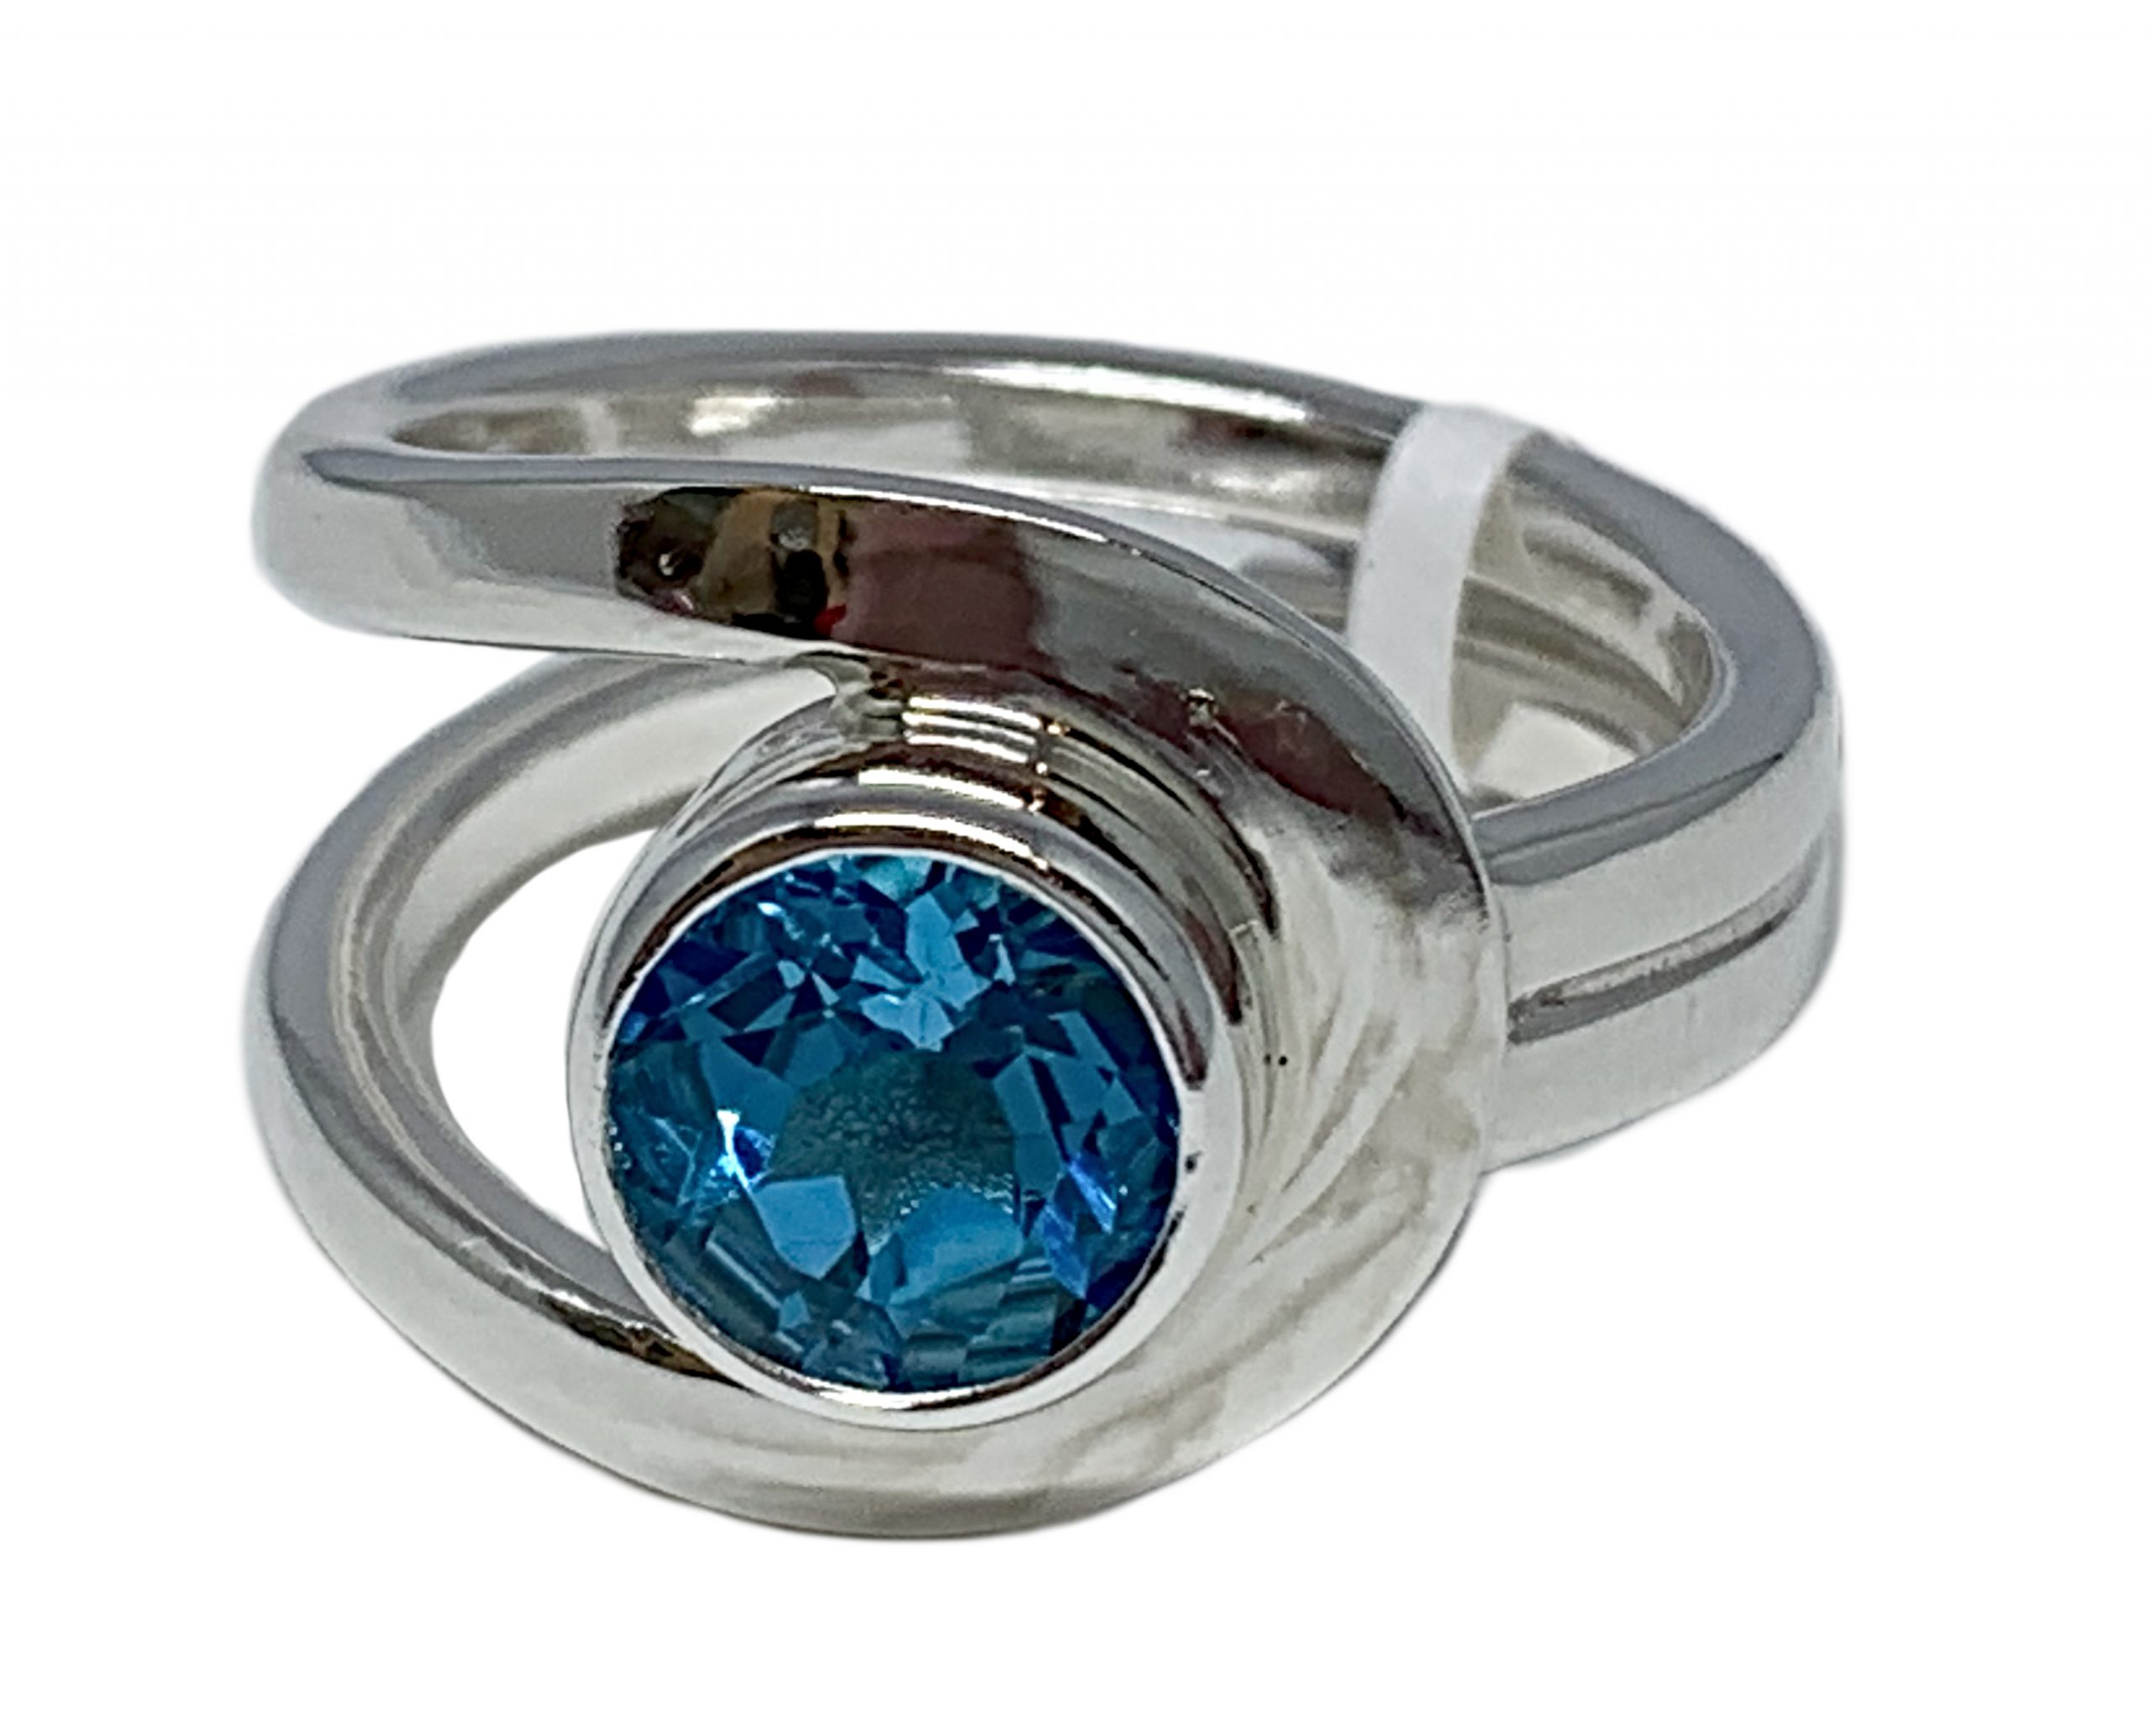 Sterling silver and 2.5 ct Swiss topaz ring by A&R Jewellery | Effusion Art Gallery + Cast Glass Studio, Invermere BC